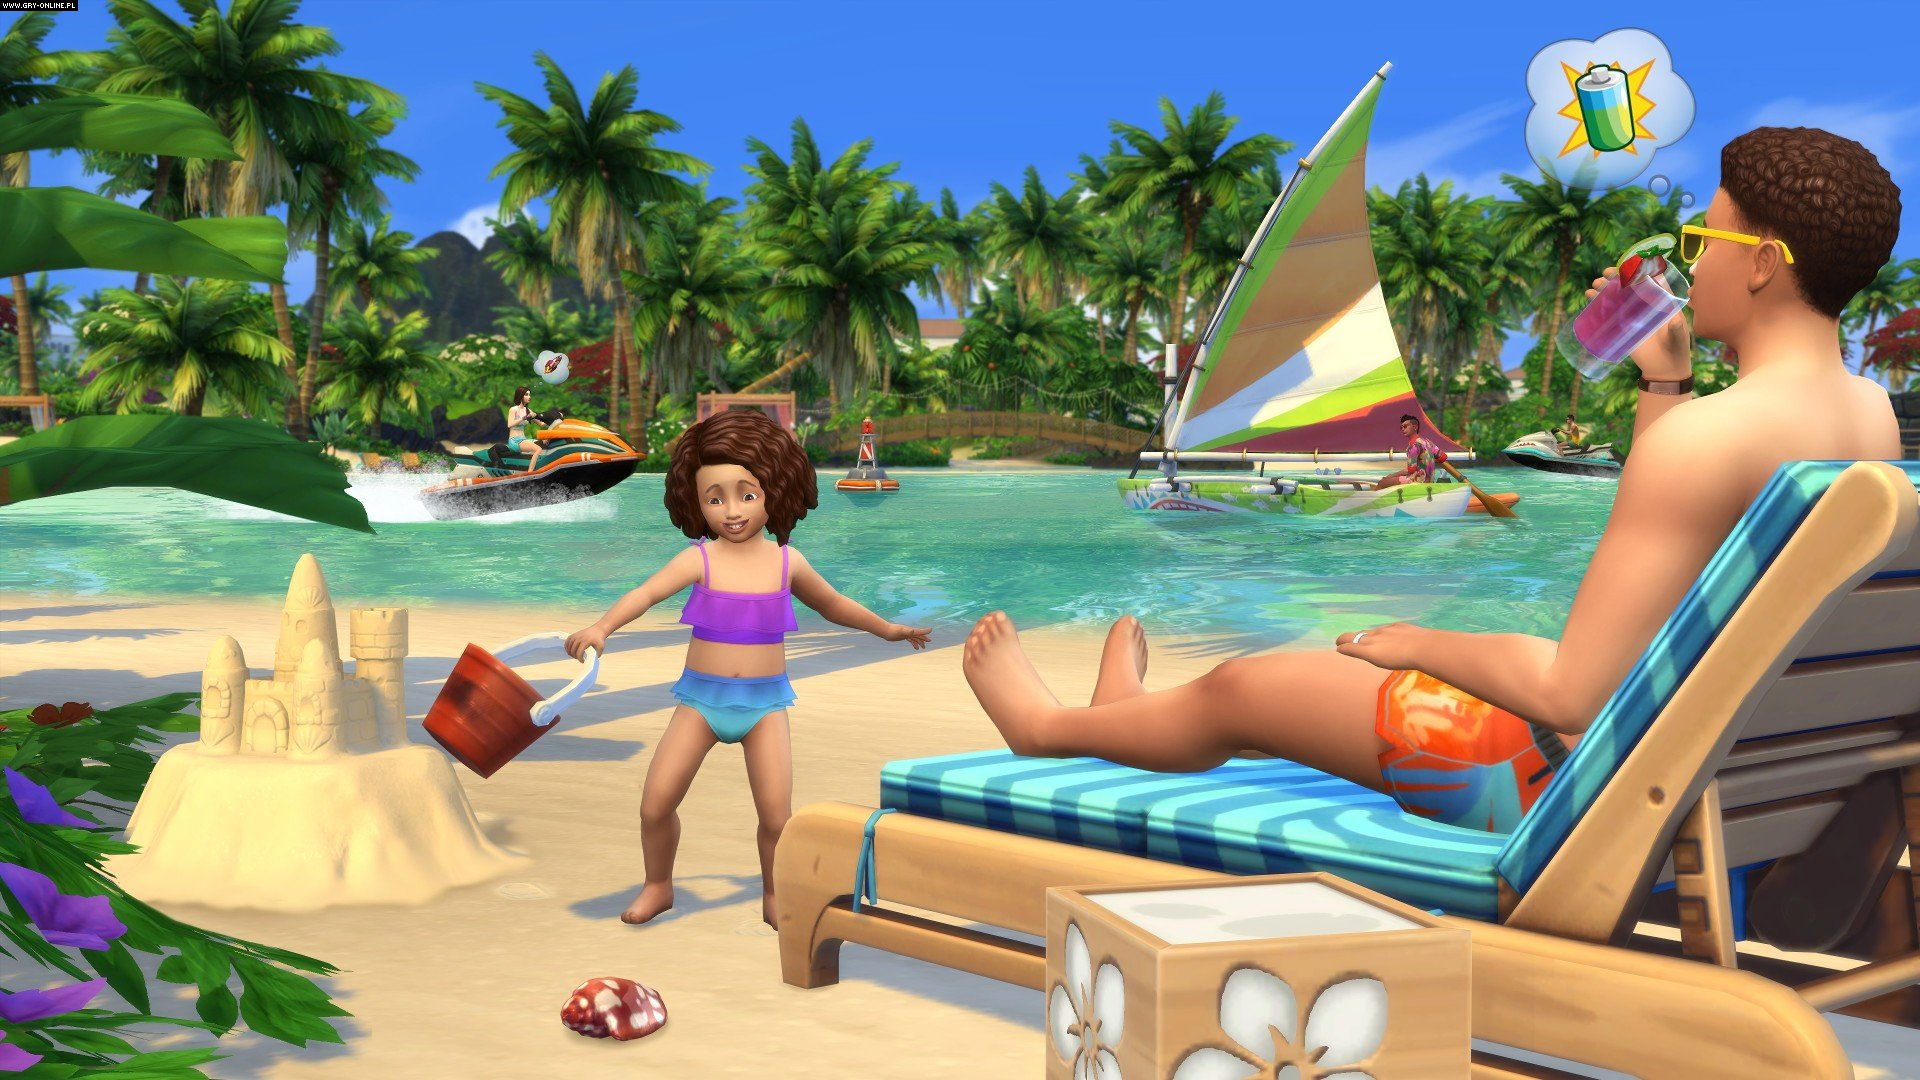 The Sims 4: Island Living PC, PS4, XONE Games Image 2/4, EA Maxis / Maxis Software, Electronic Arts Inc.